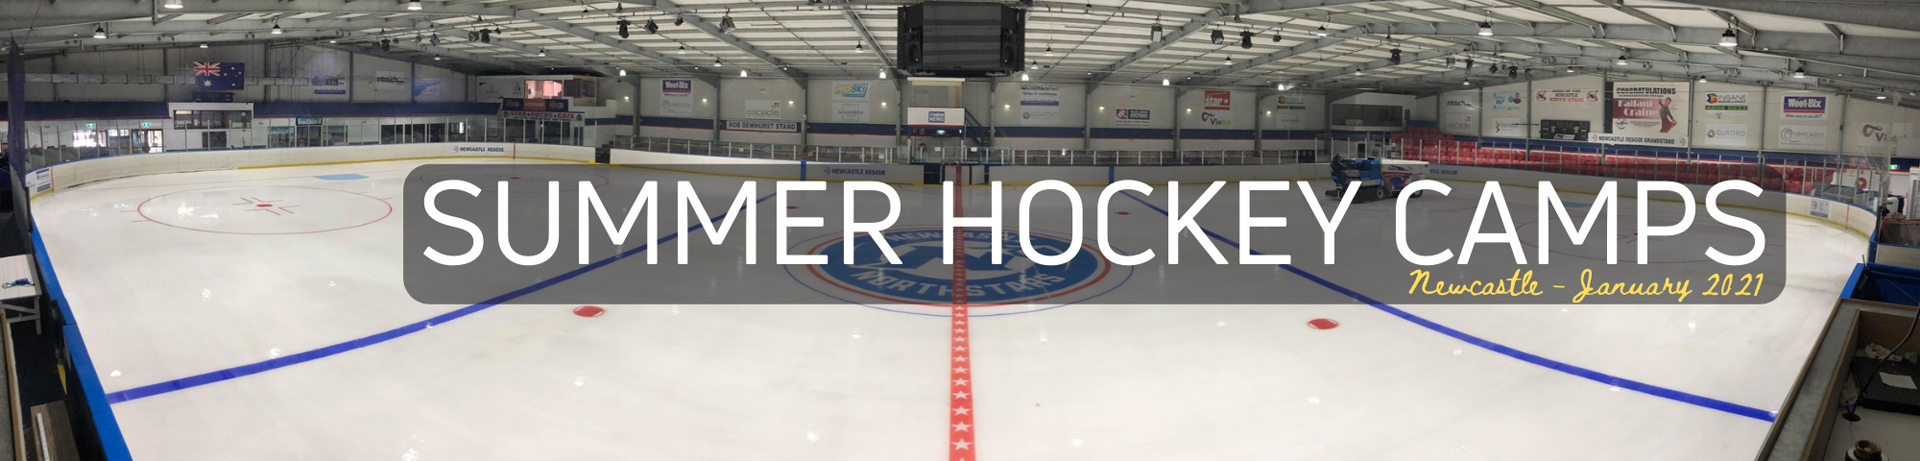 Summer Hockey Camps